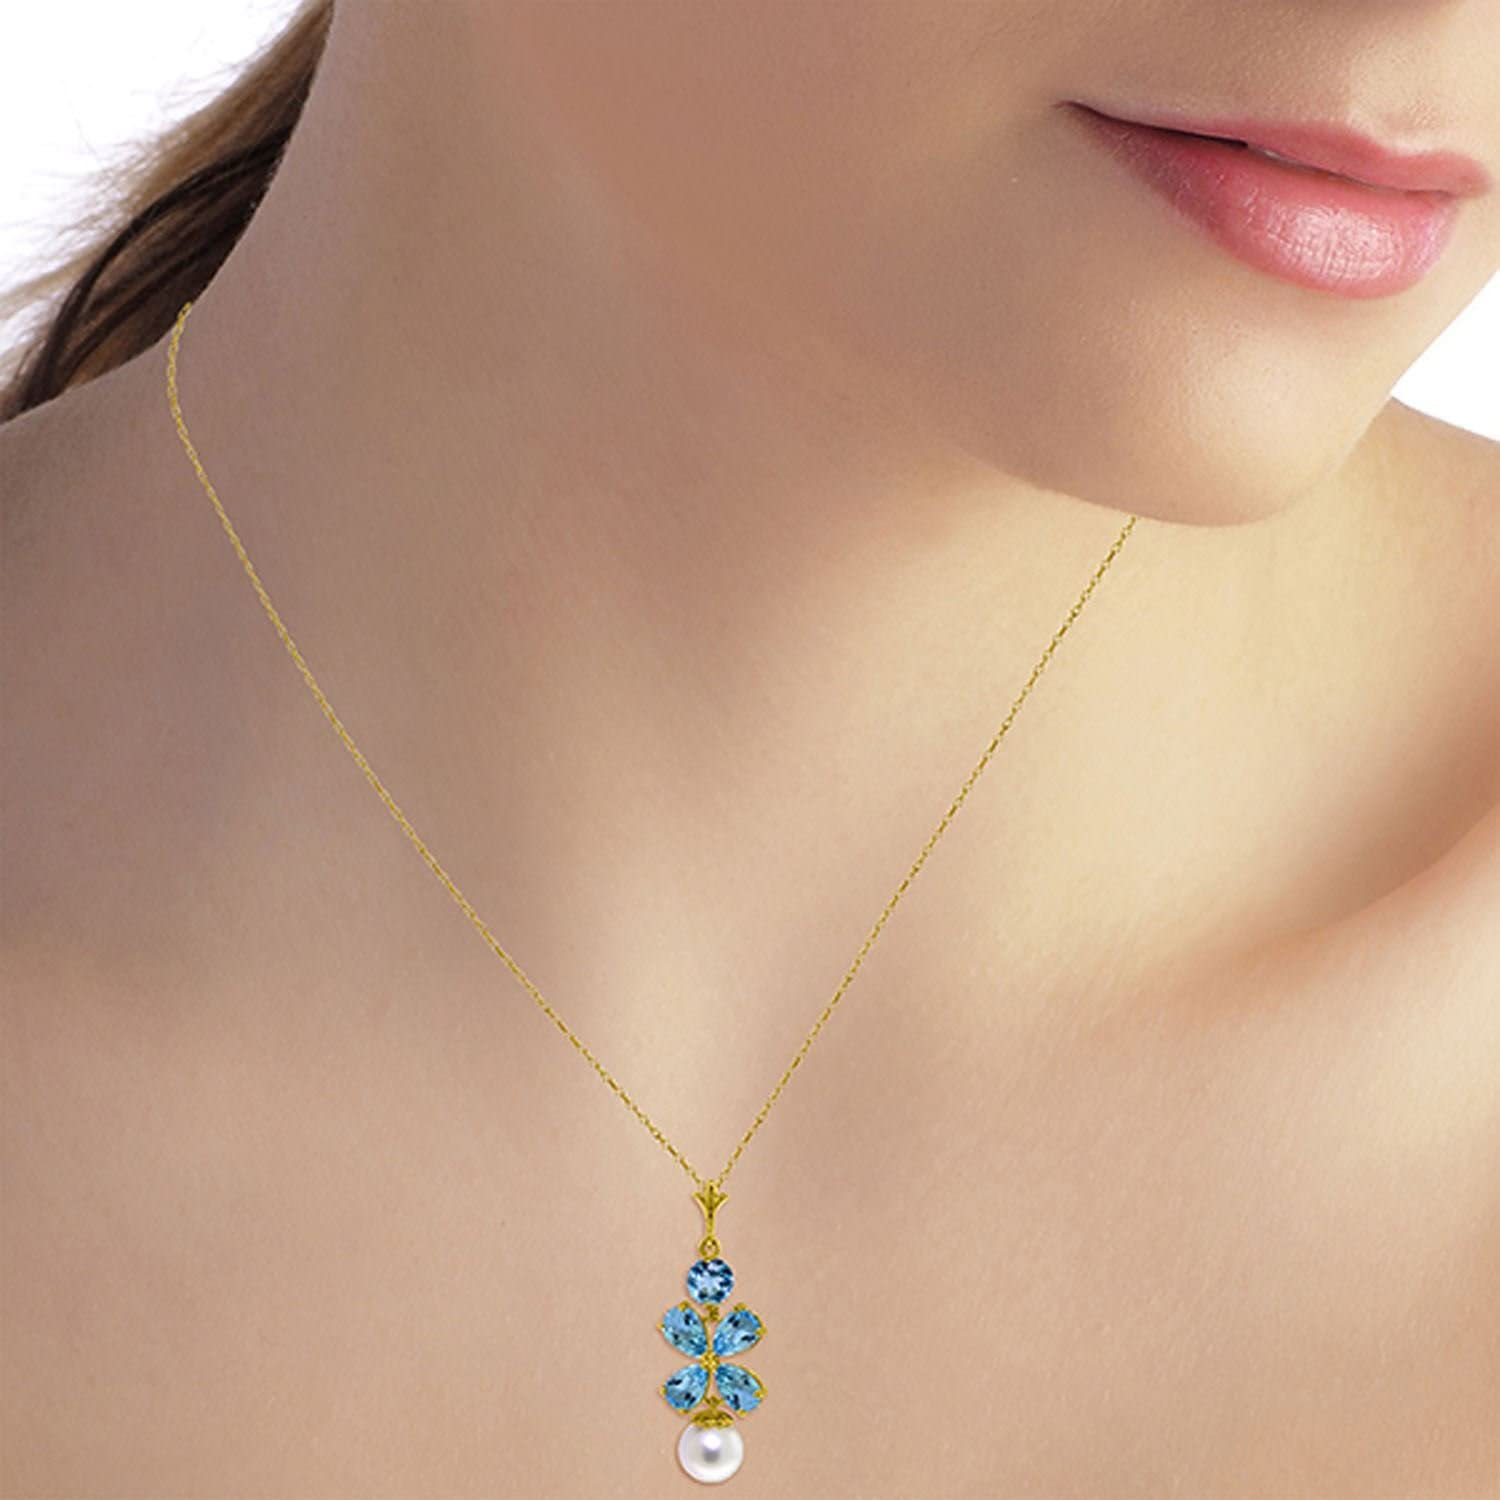 ALARRI 3.65 Carat 14K Soild Gold Seafoam Blue Topaz Pearl Necklace with 22 Inch Chain Length